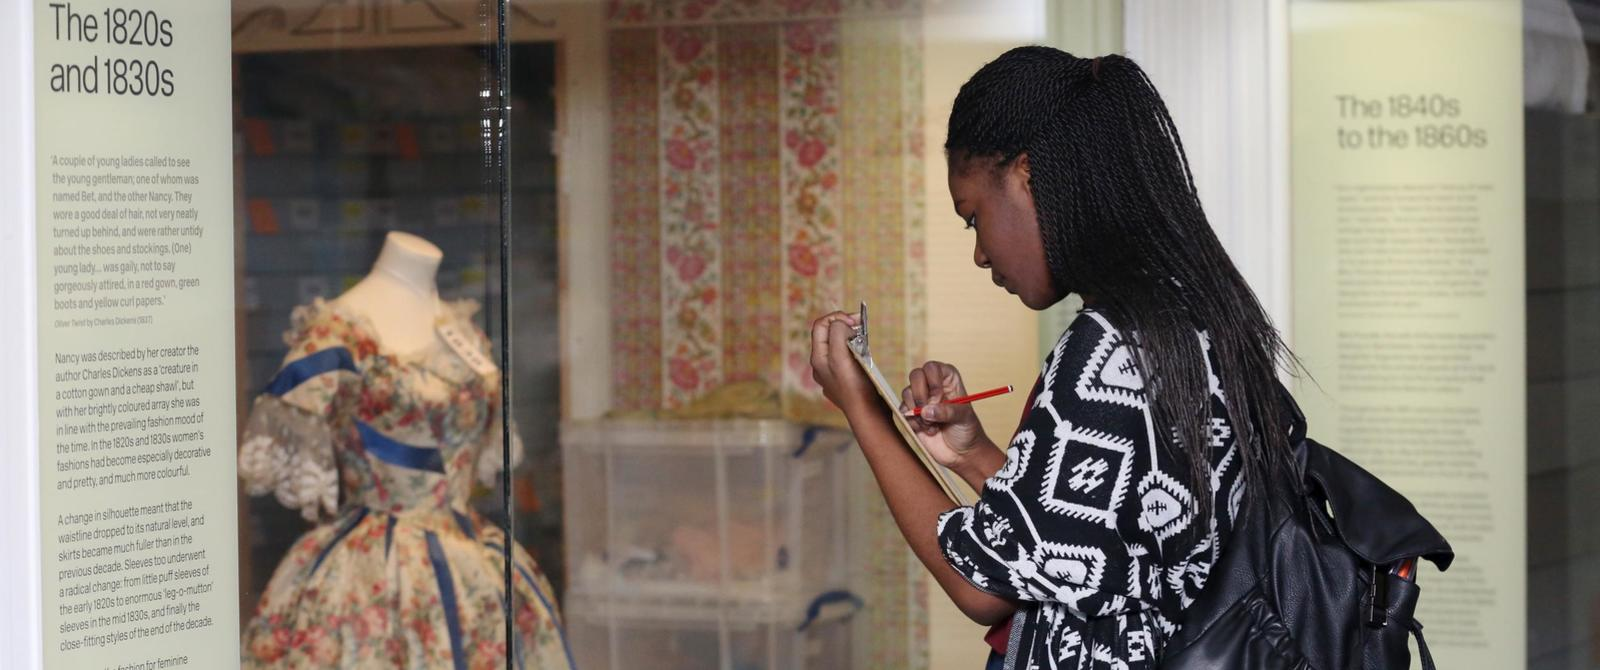 Image: Pupil sketching in the galleries